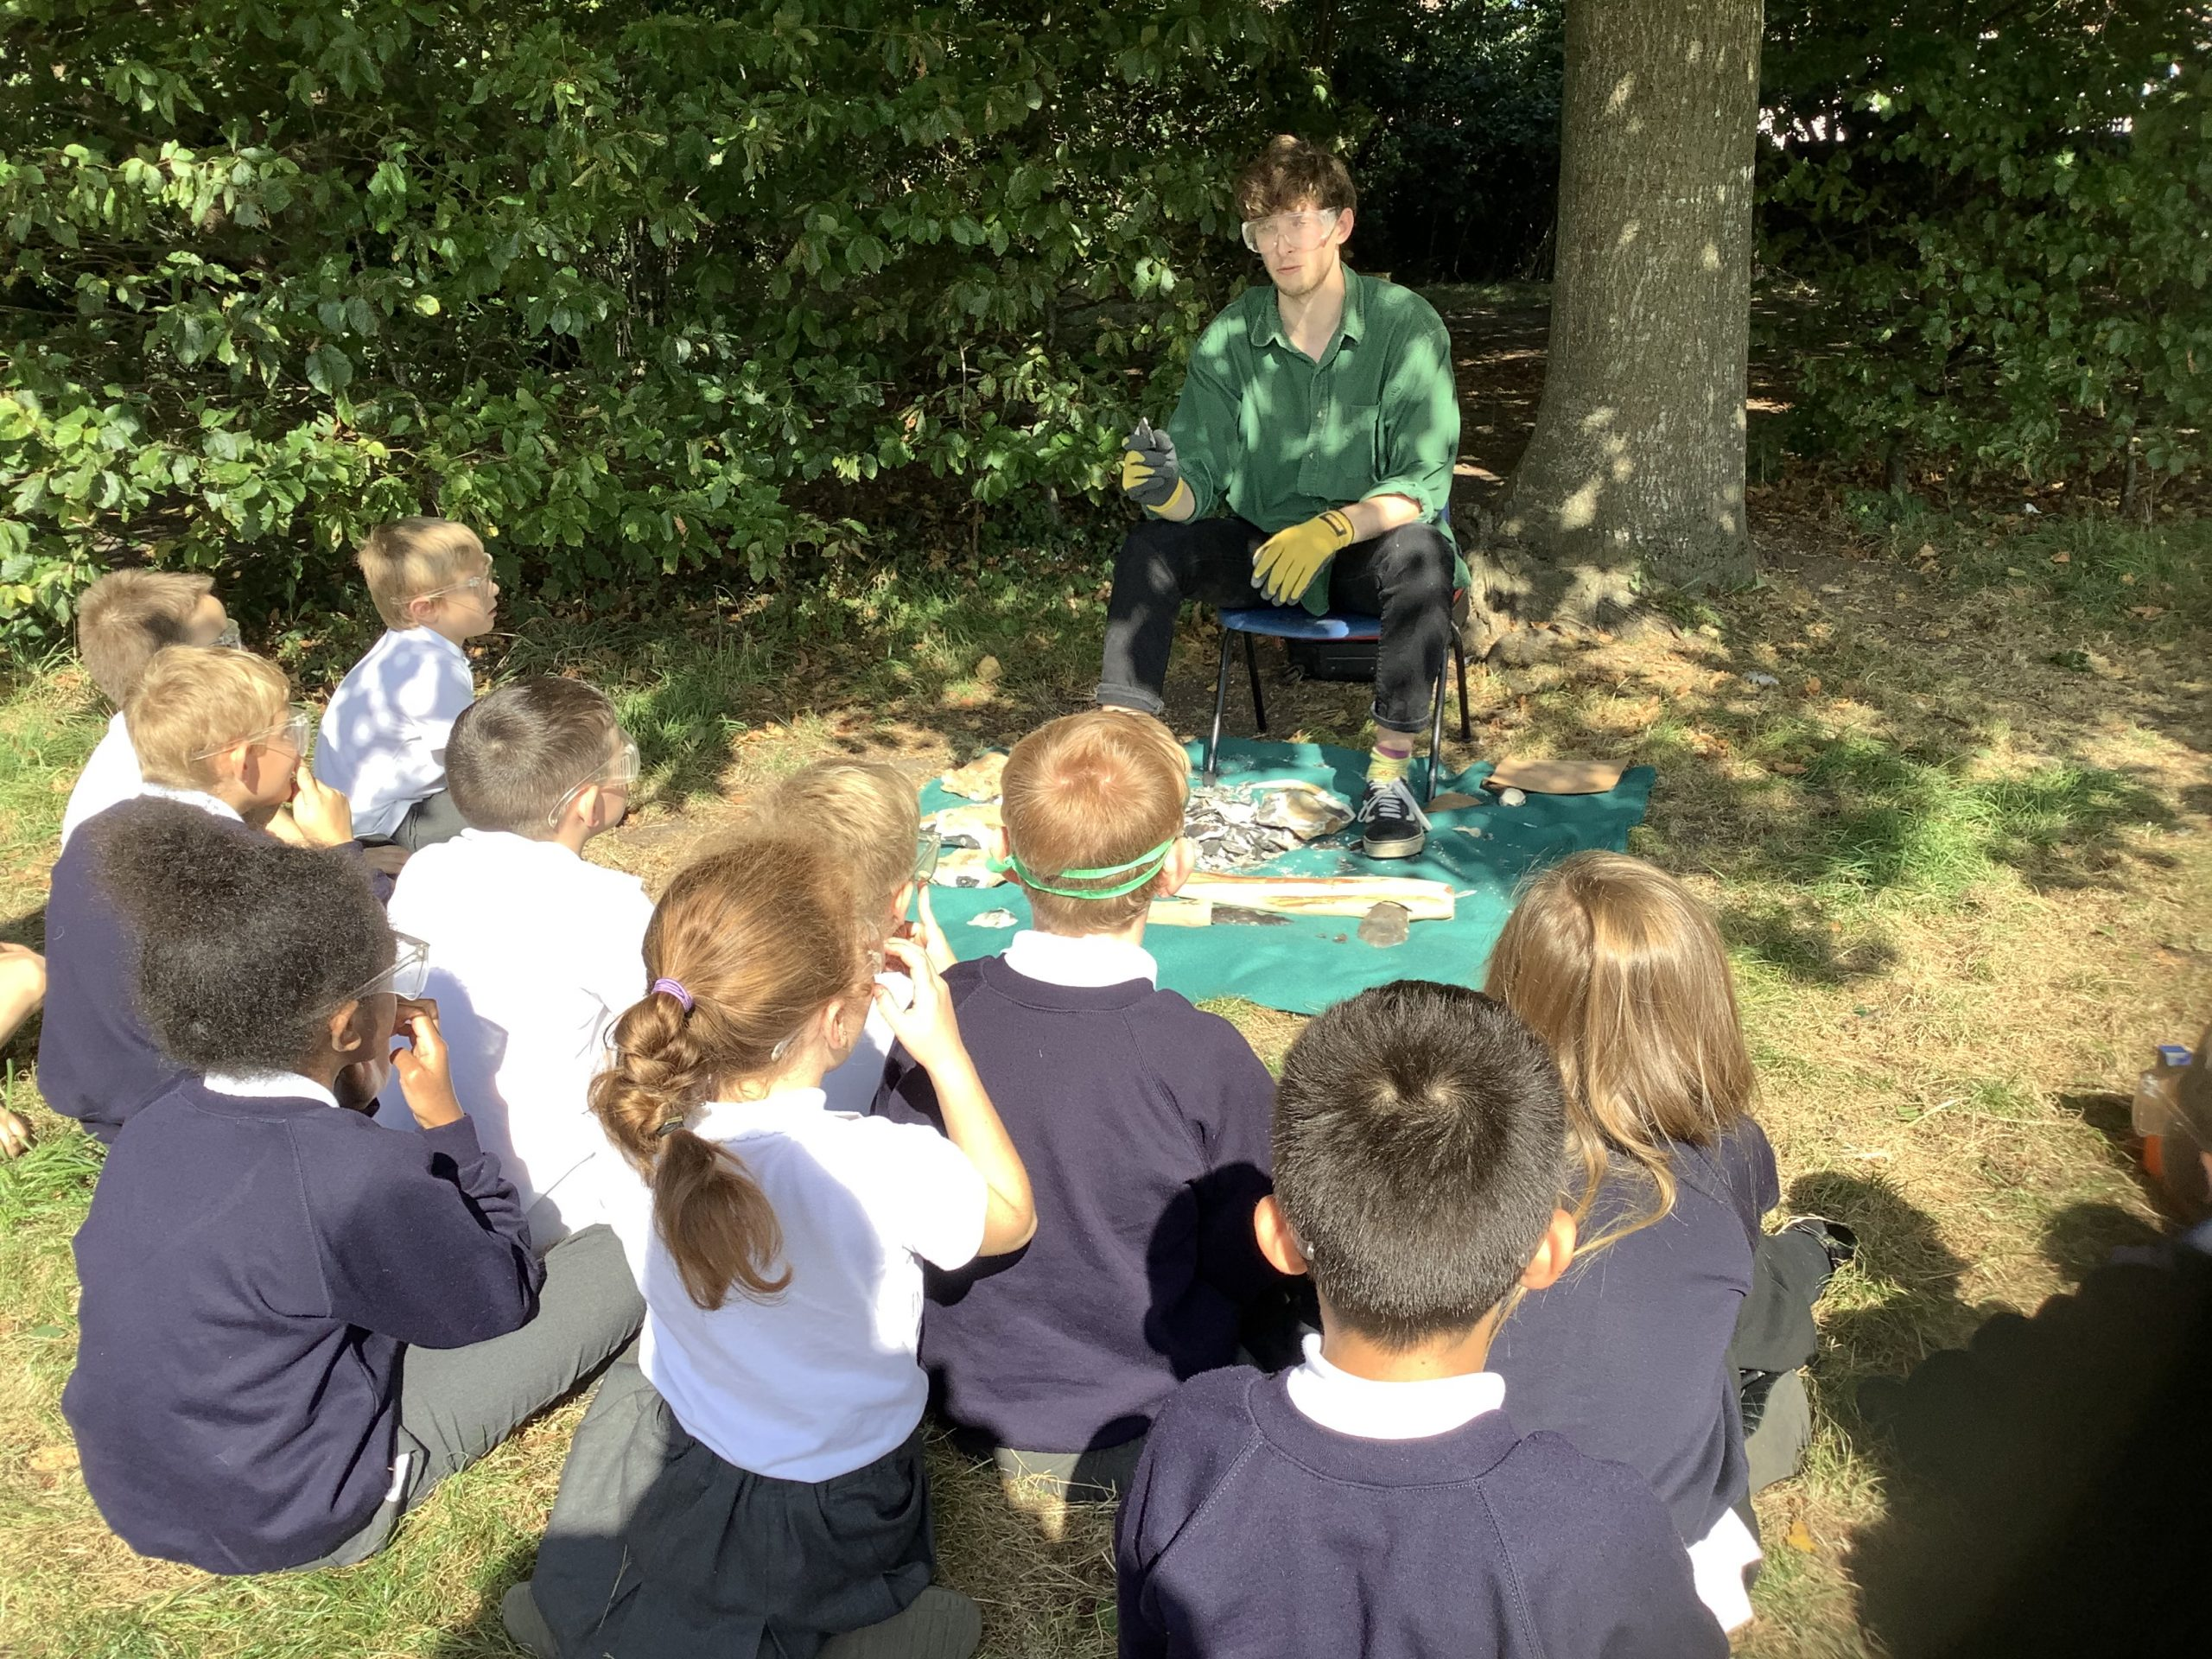 Y3 gallery In year 3, we were very lucky to have a visitor in on Friday who showed the children how to knap flint to make a hand axe. Plus, we get to keep the 'Stone Age' tools he made for each class while he answered all our questions. He used an antler to create the perfect shape. Wow!